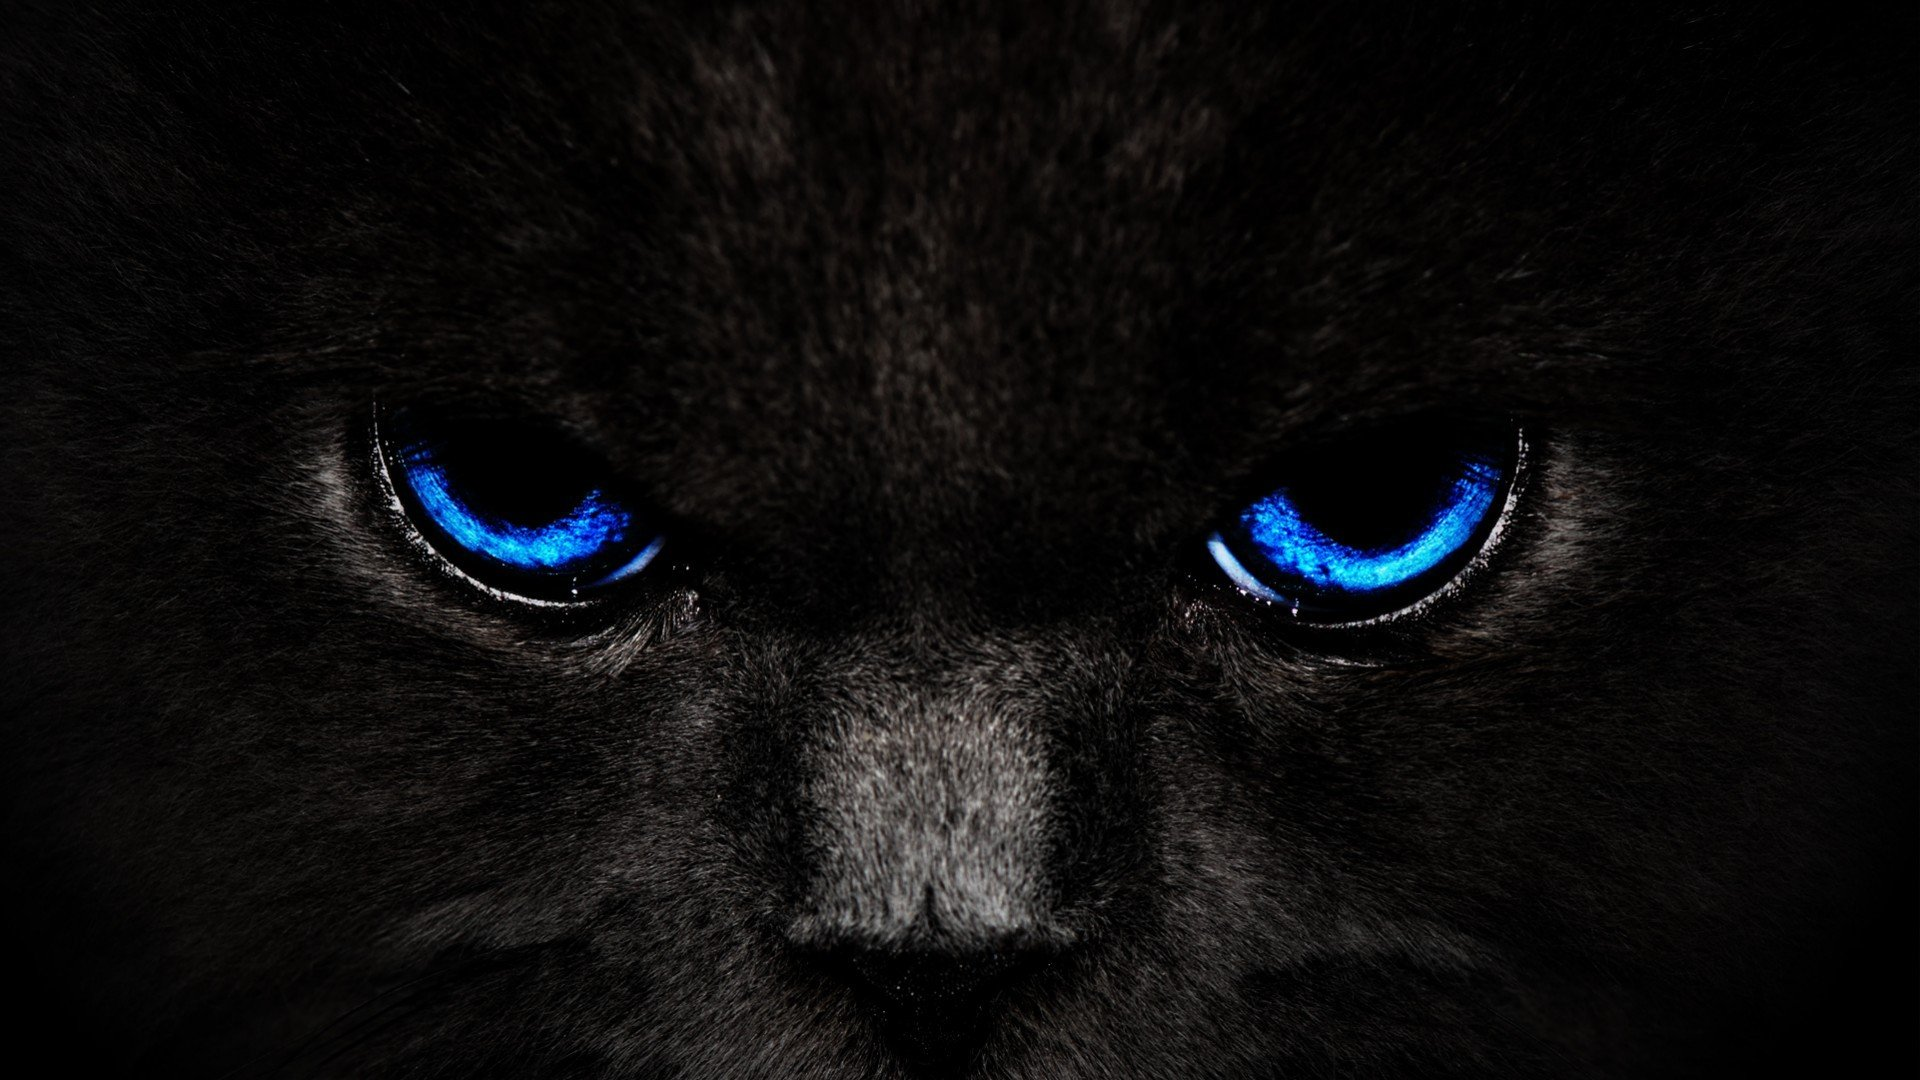 Animals Blue Eyes Cats Awesome Desktop HD Wallpaper 1920x1080